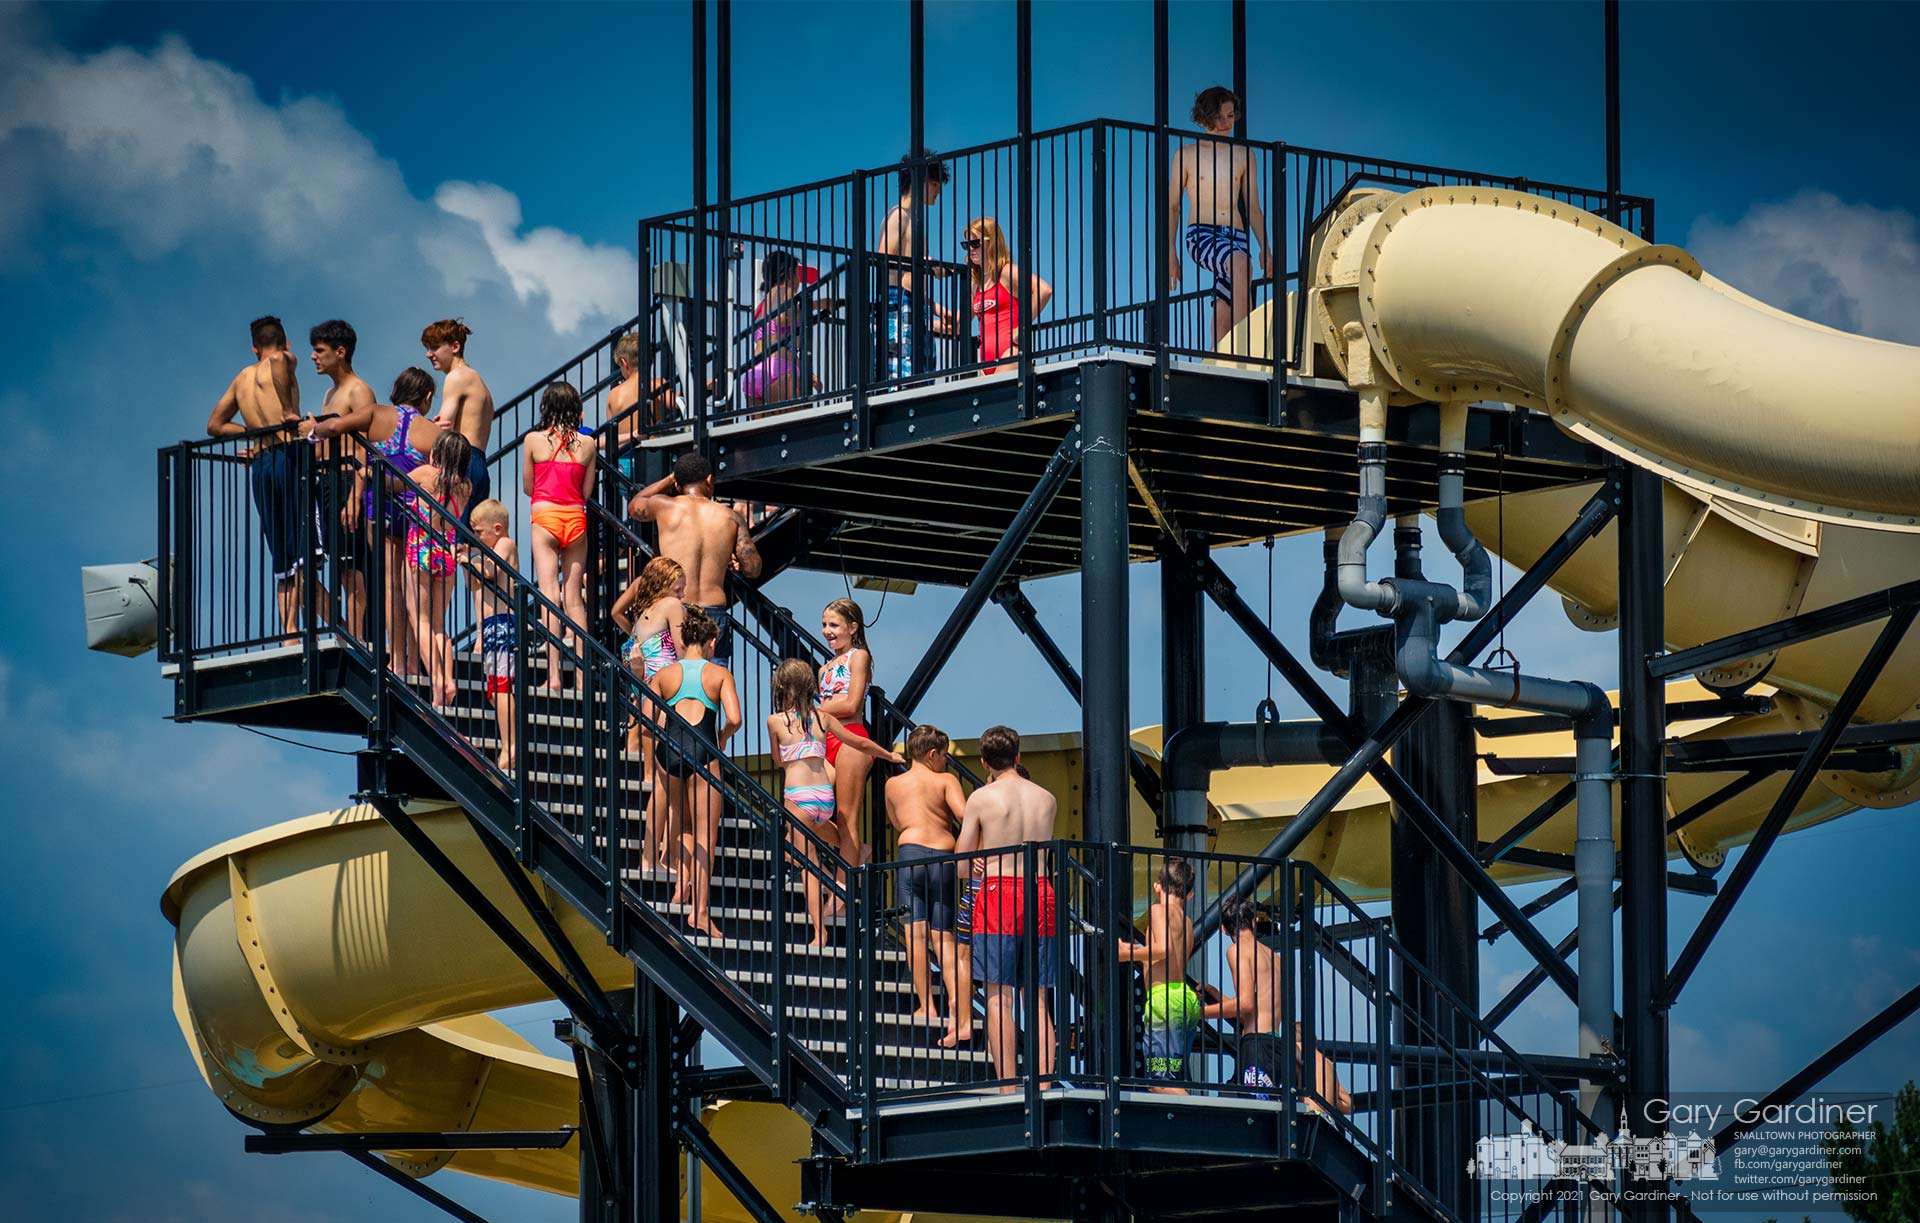 Youngsters line up on stairs leading to the two water slides at Highlands Aquatic Center hoping their time arrives for the fun ride before the pools close for 15 minutes before the hour. My Final Photo for July 18, 2021.